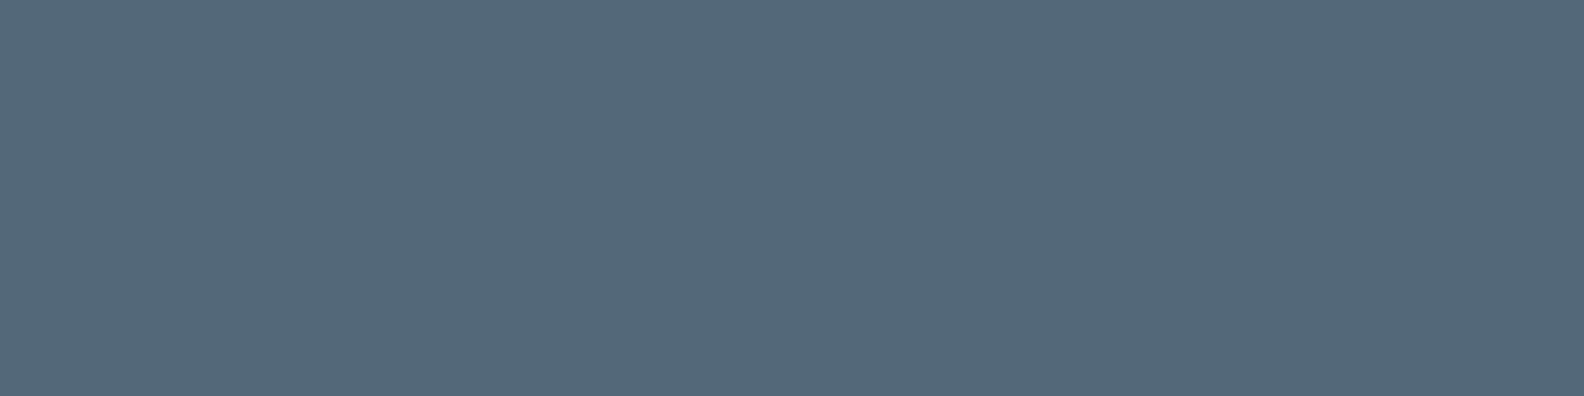 1584x396 Dark Electric Blue Solid Color Background